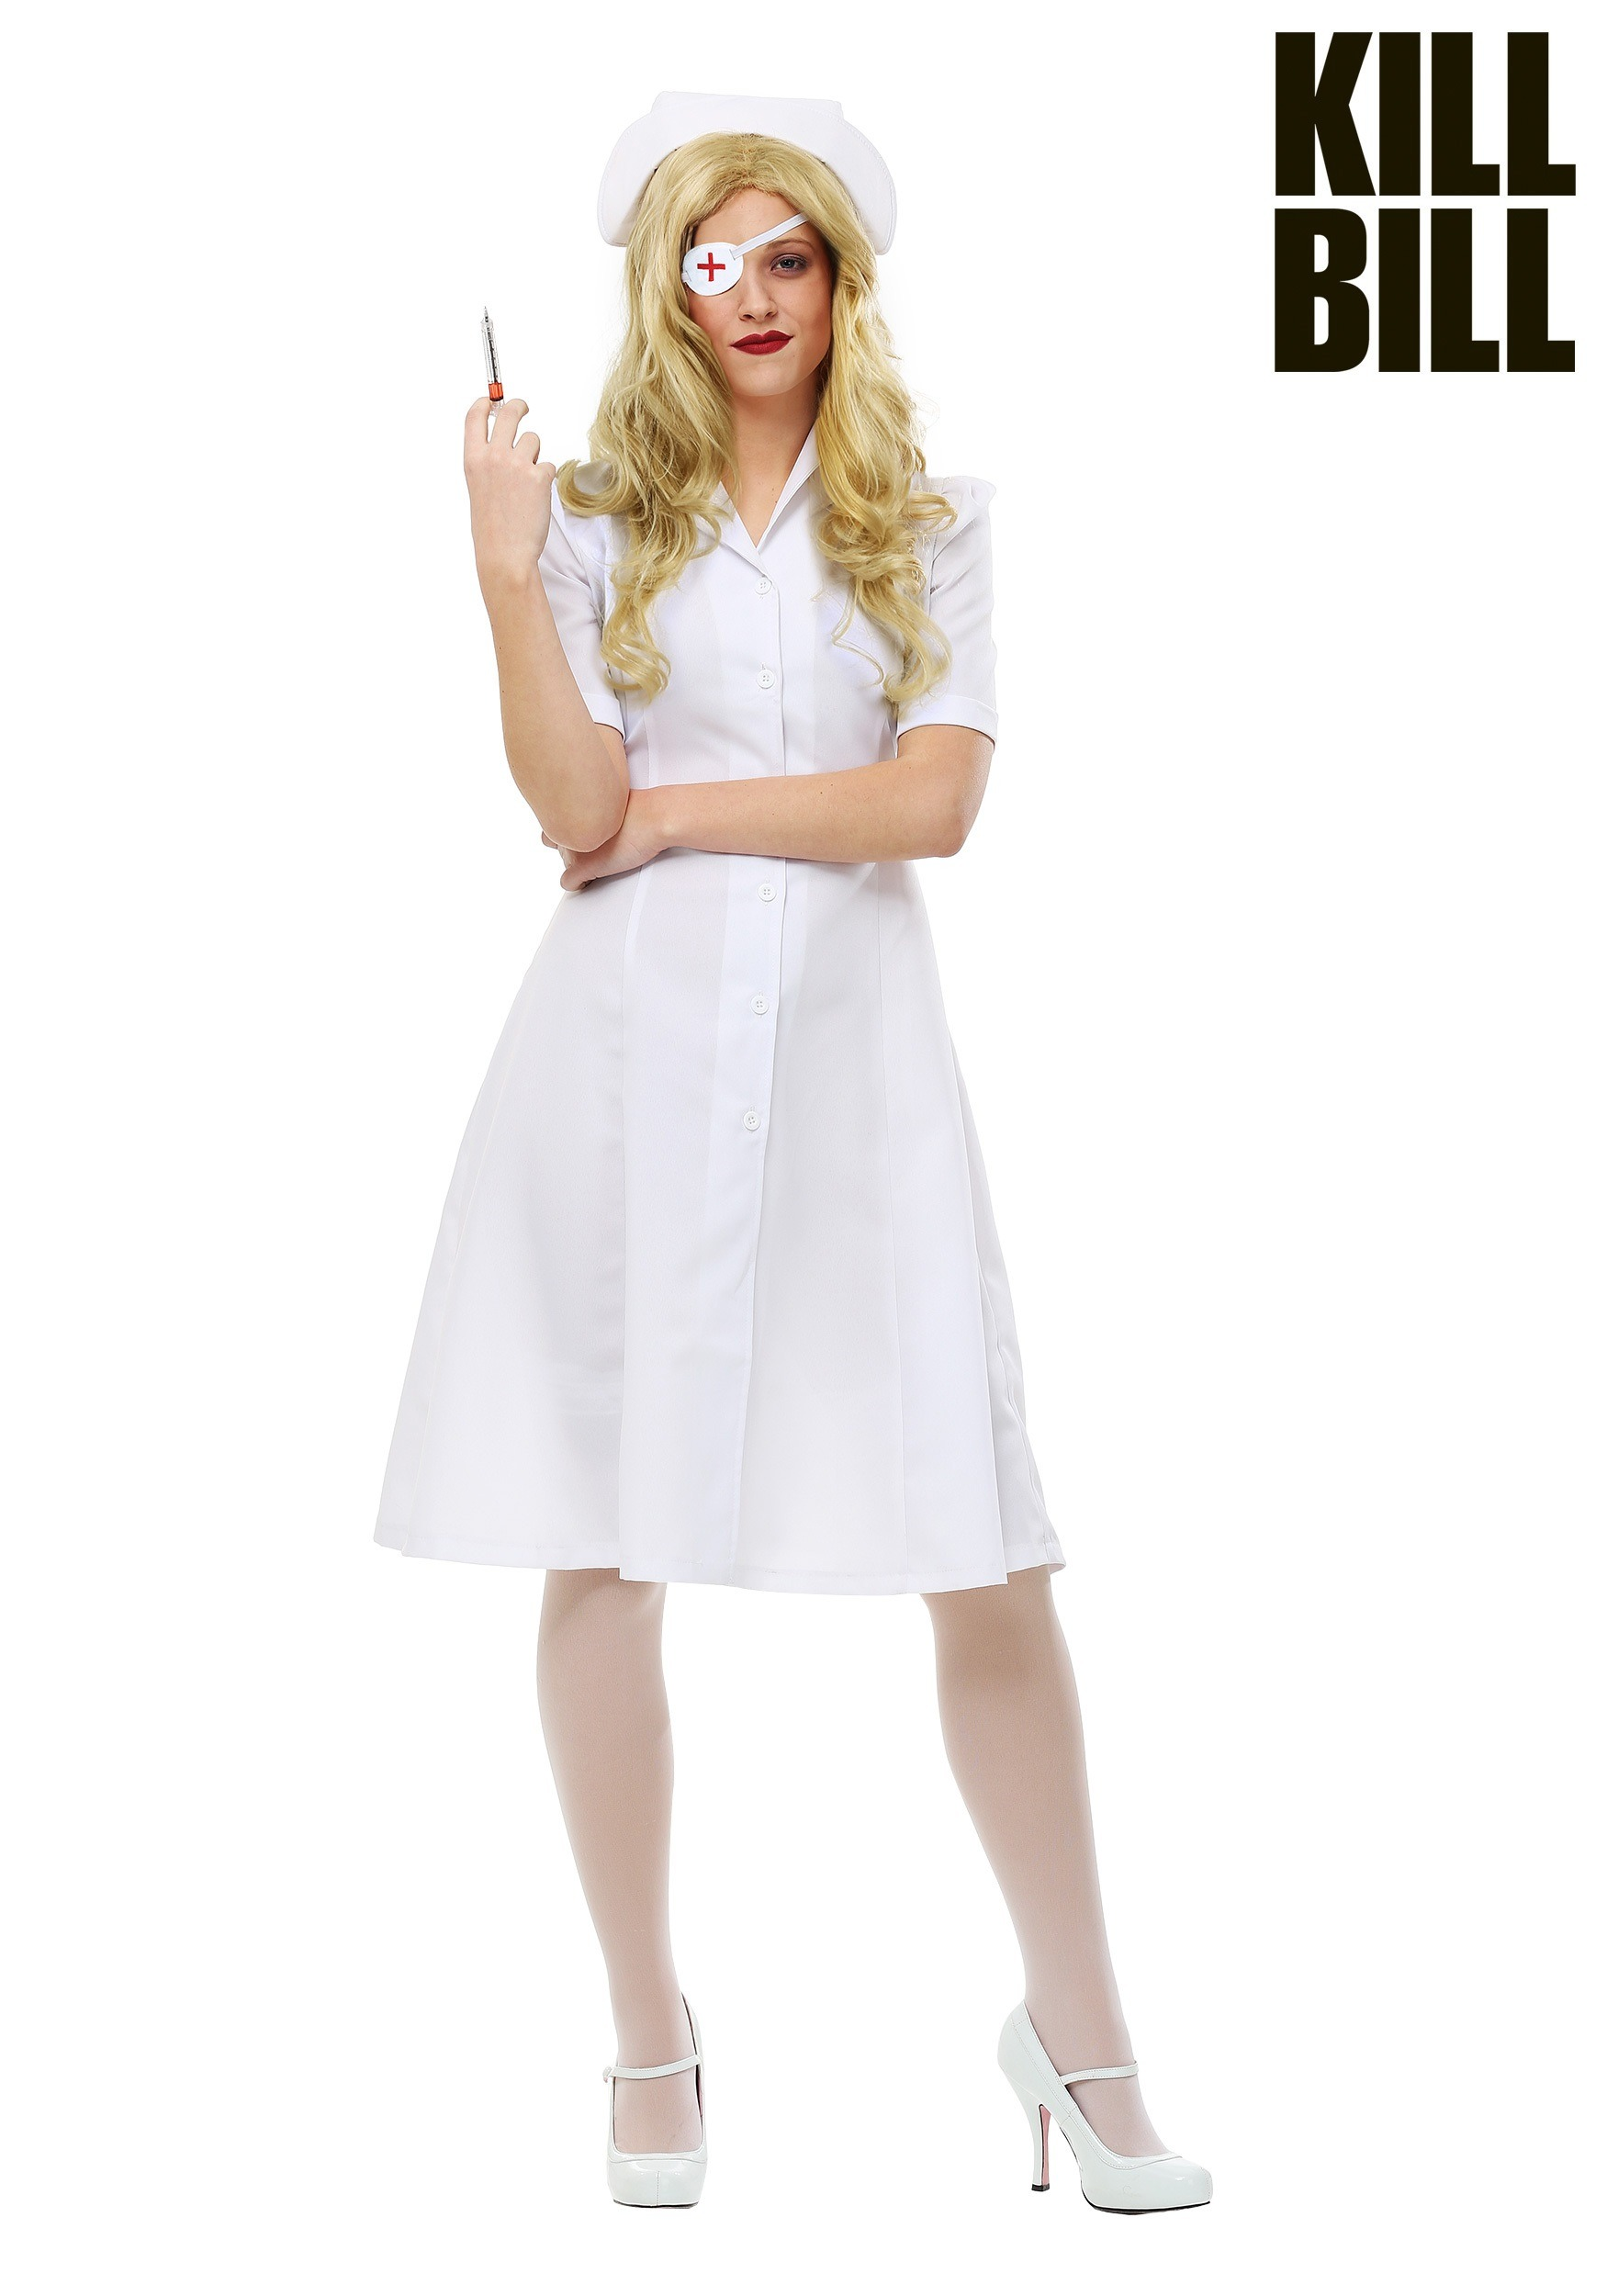 Kill Bill Elle Driver Nurse Womens Costume  sc 1 st  Halloween Costumes & Nurse / Doctor Costumes - Surgeon Doctor Nurse Costume